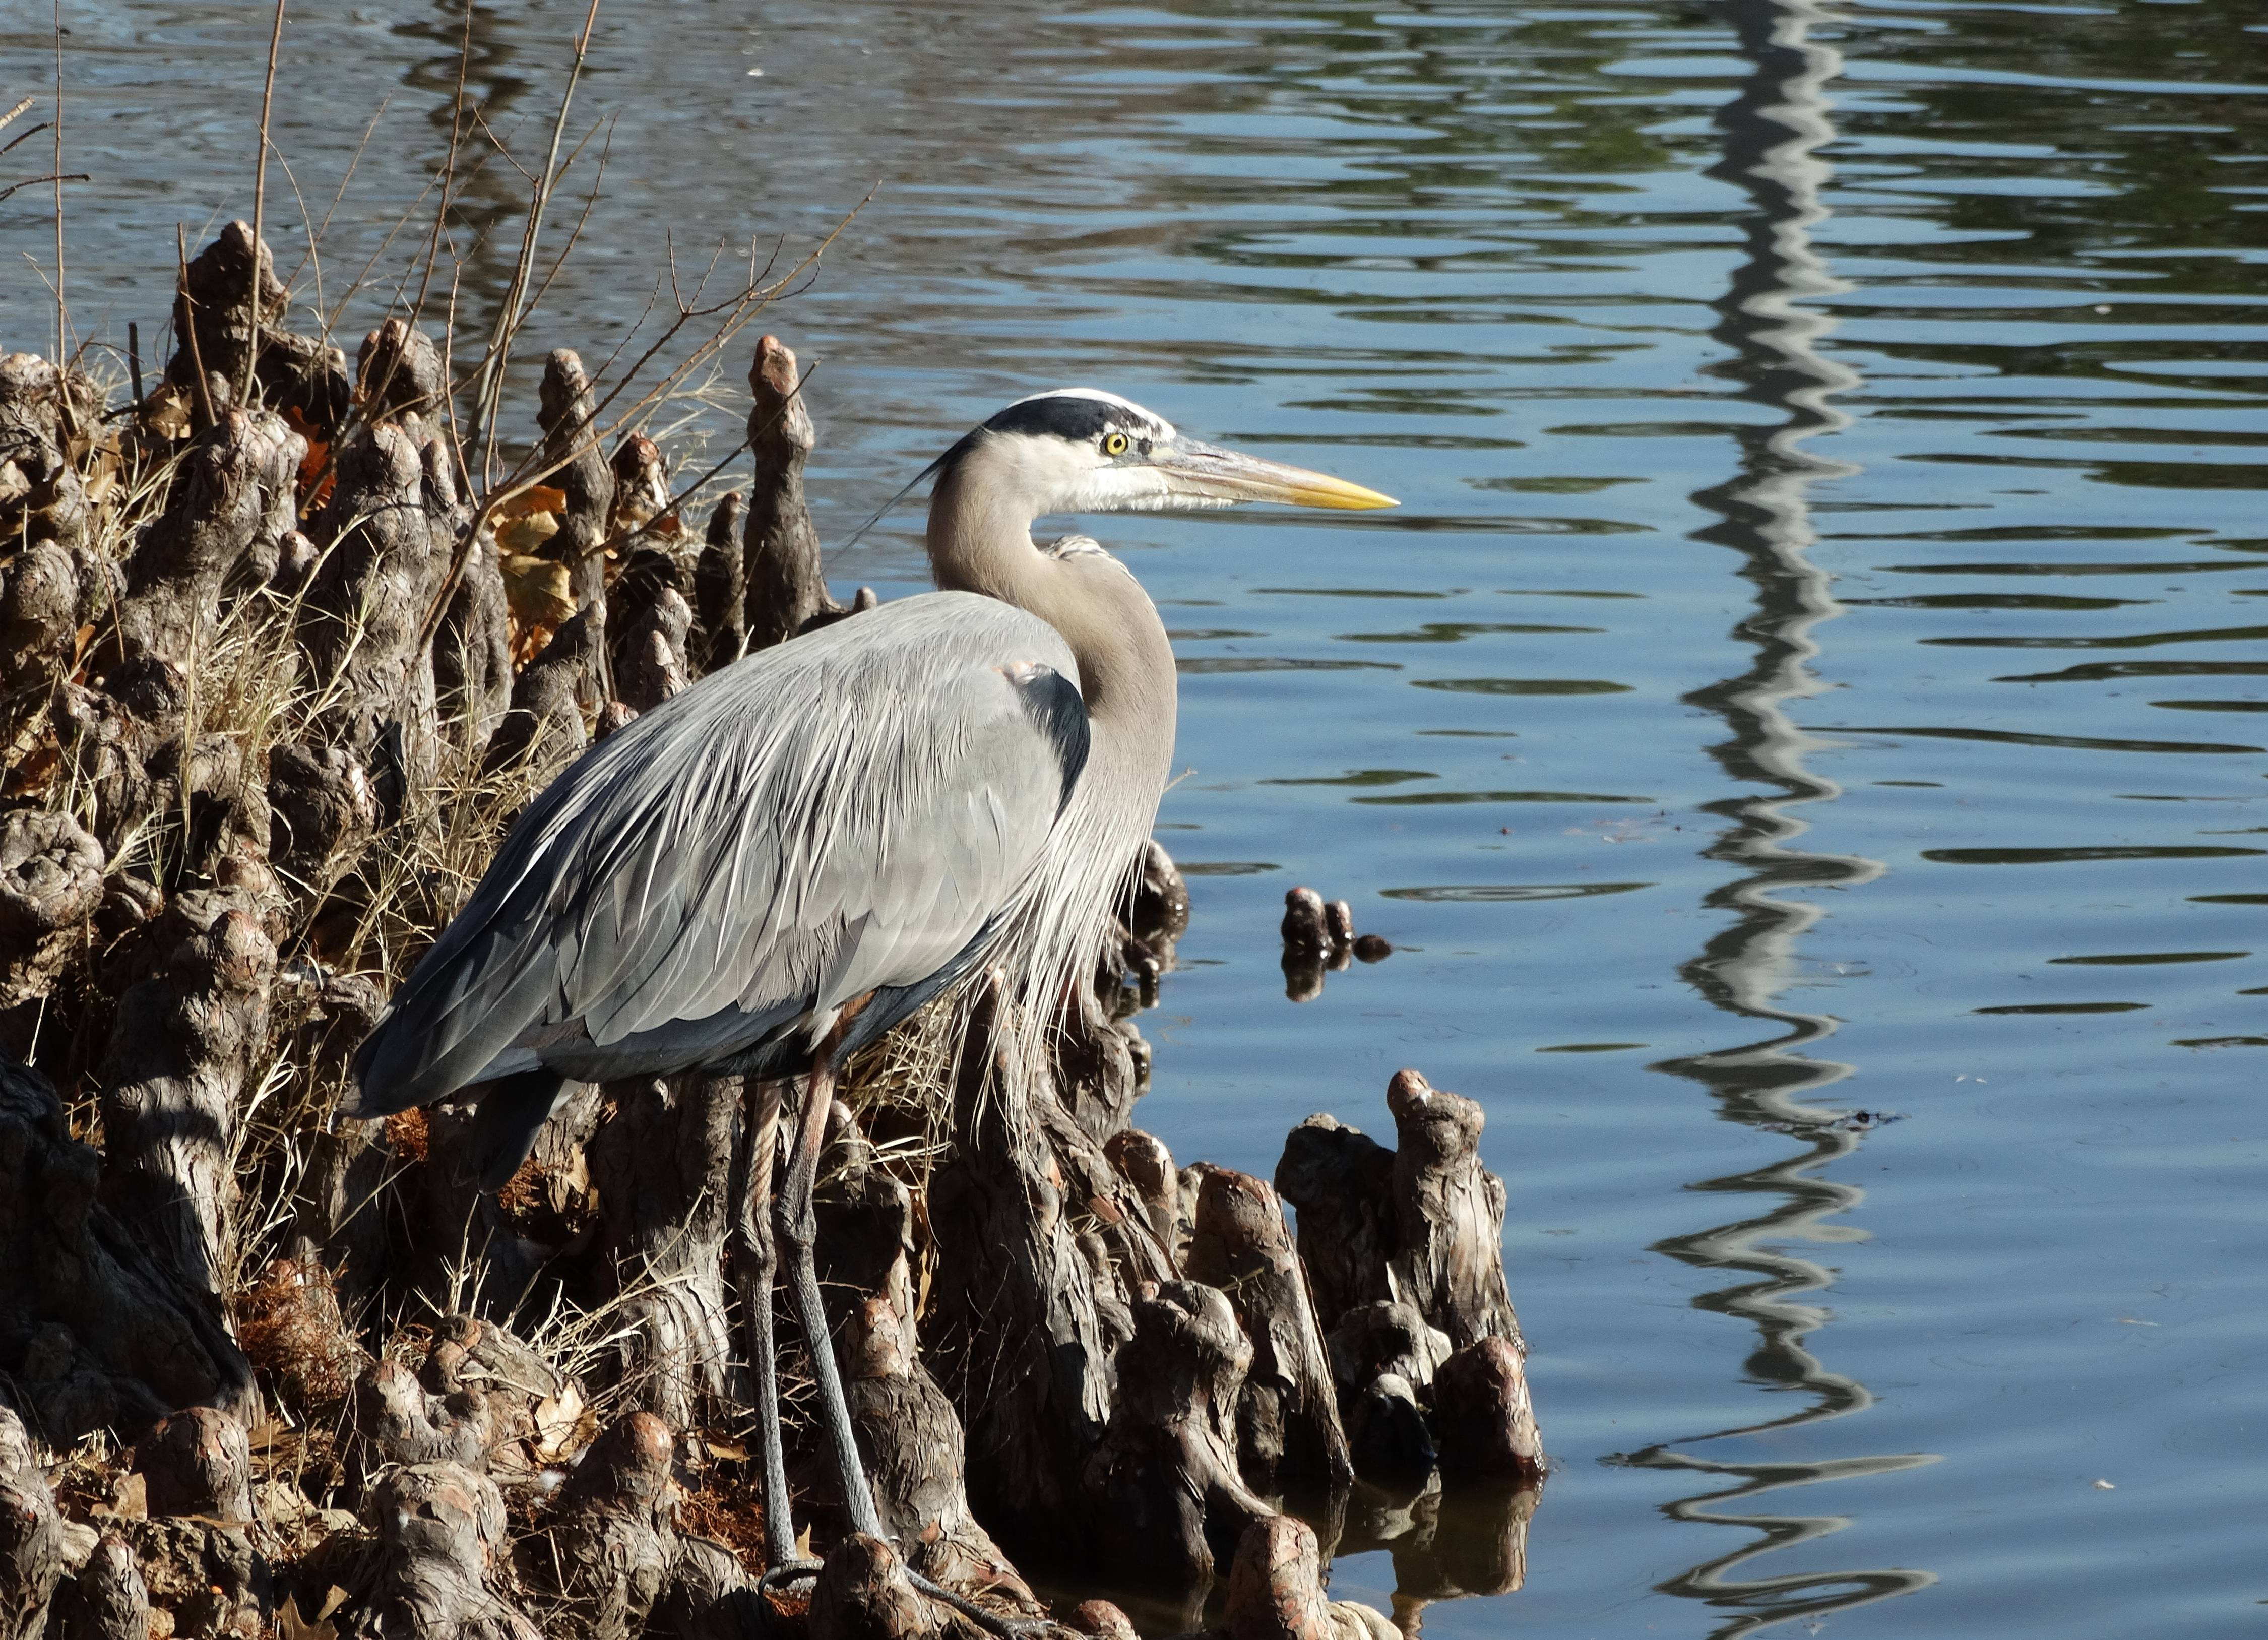 Divine Inspiration Photo #3A - Great Blue Heron - 8 x 10